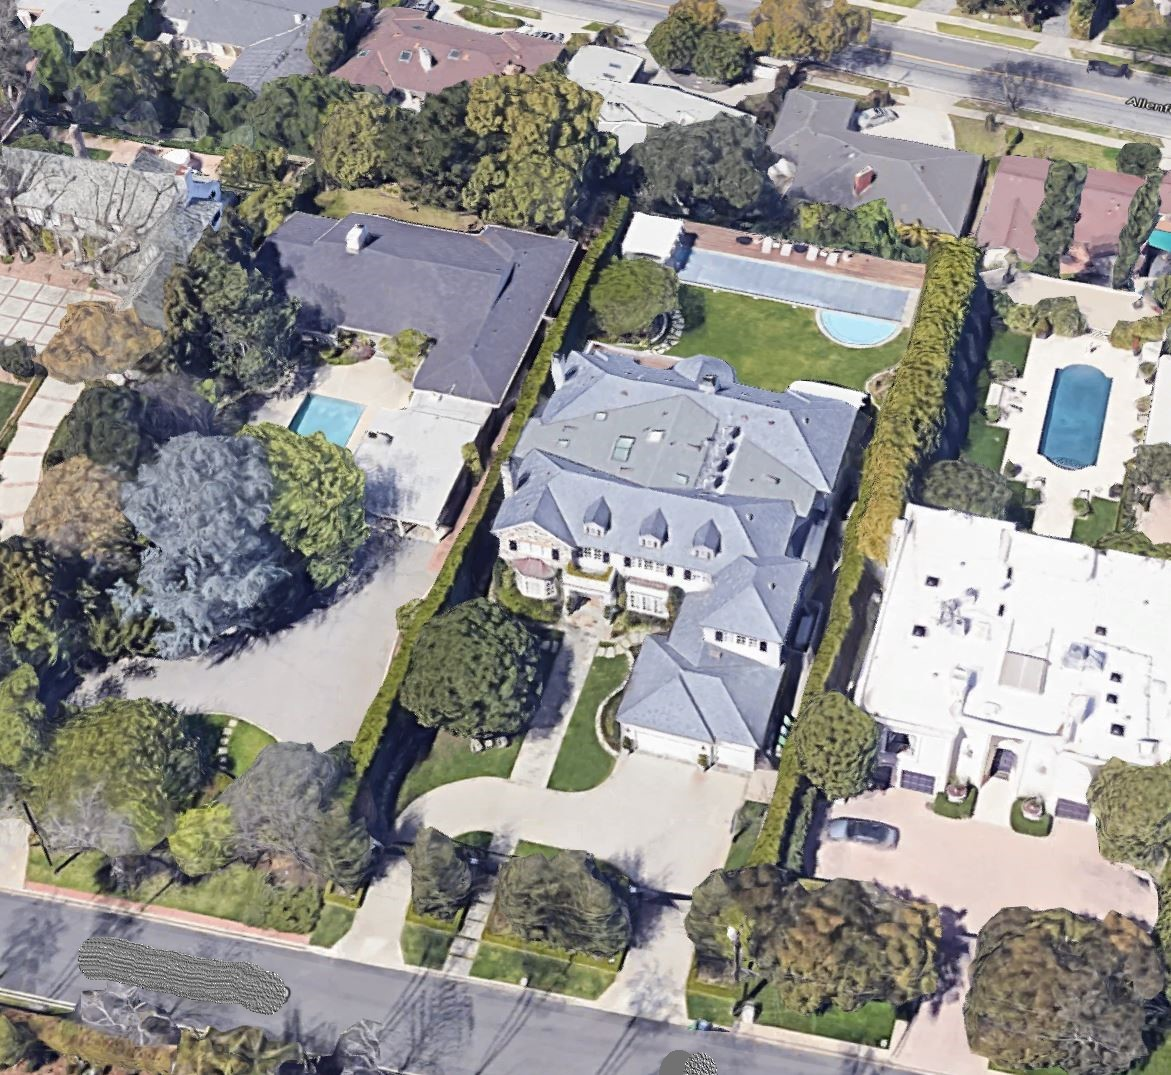 Arial view of LeBron's other Brentwood house